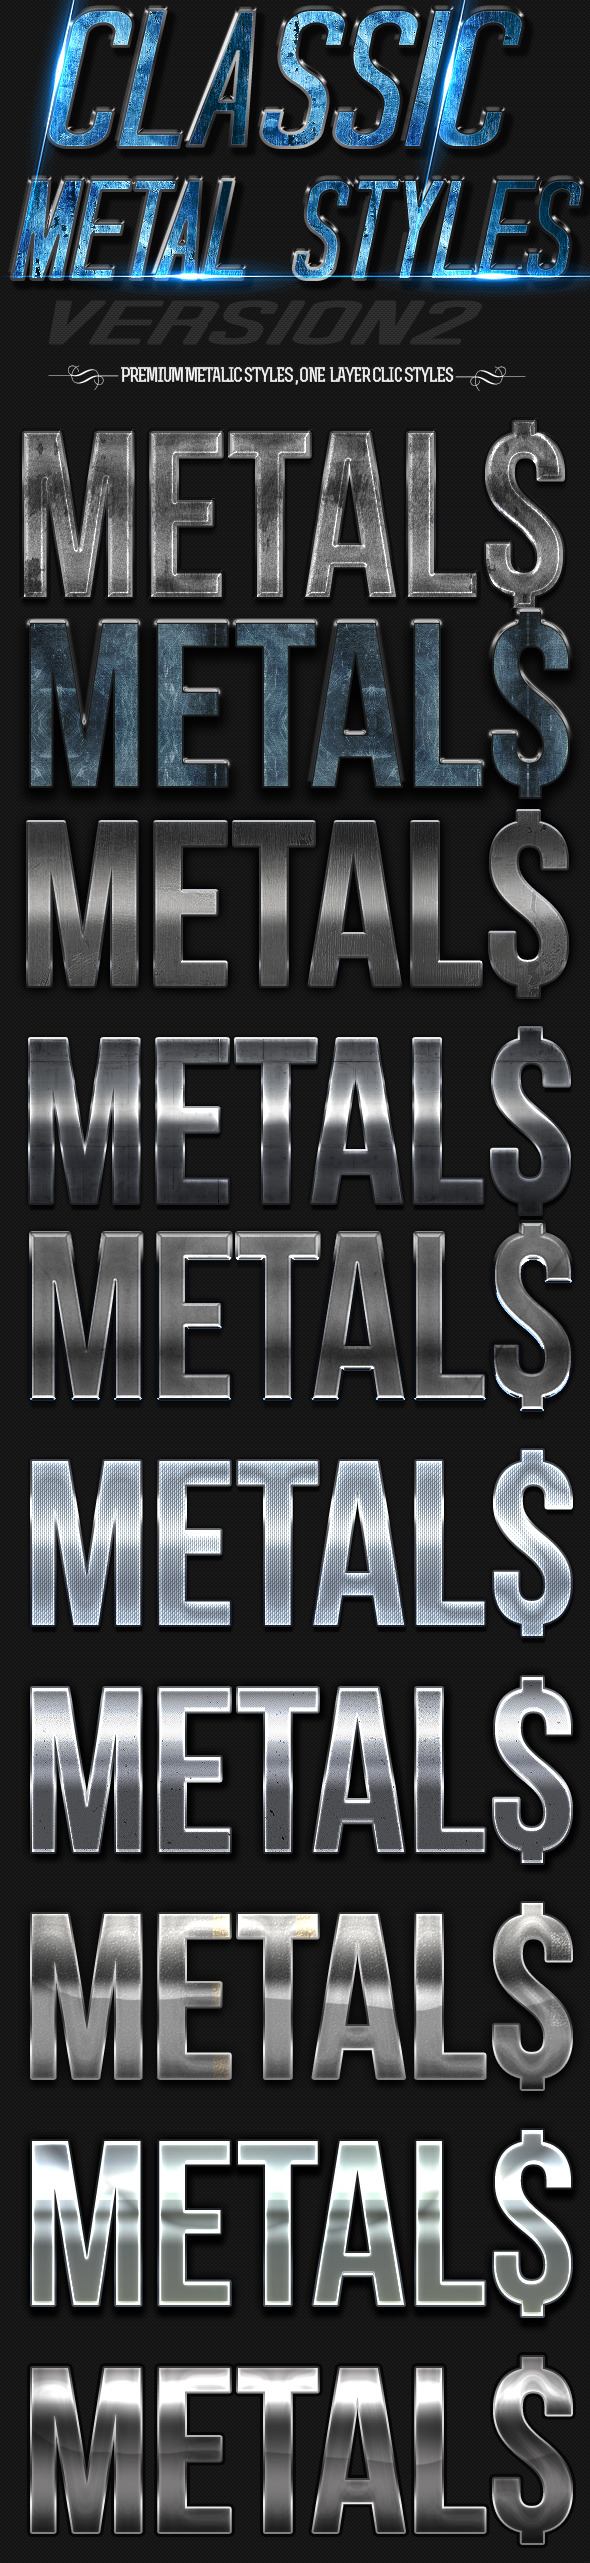 Classic Metal Styles 2 - Text Effects Styles